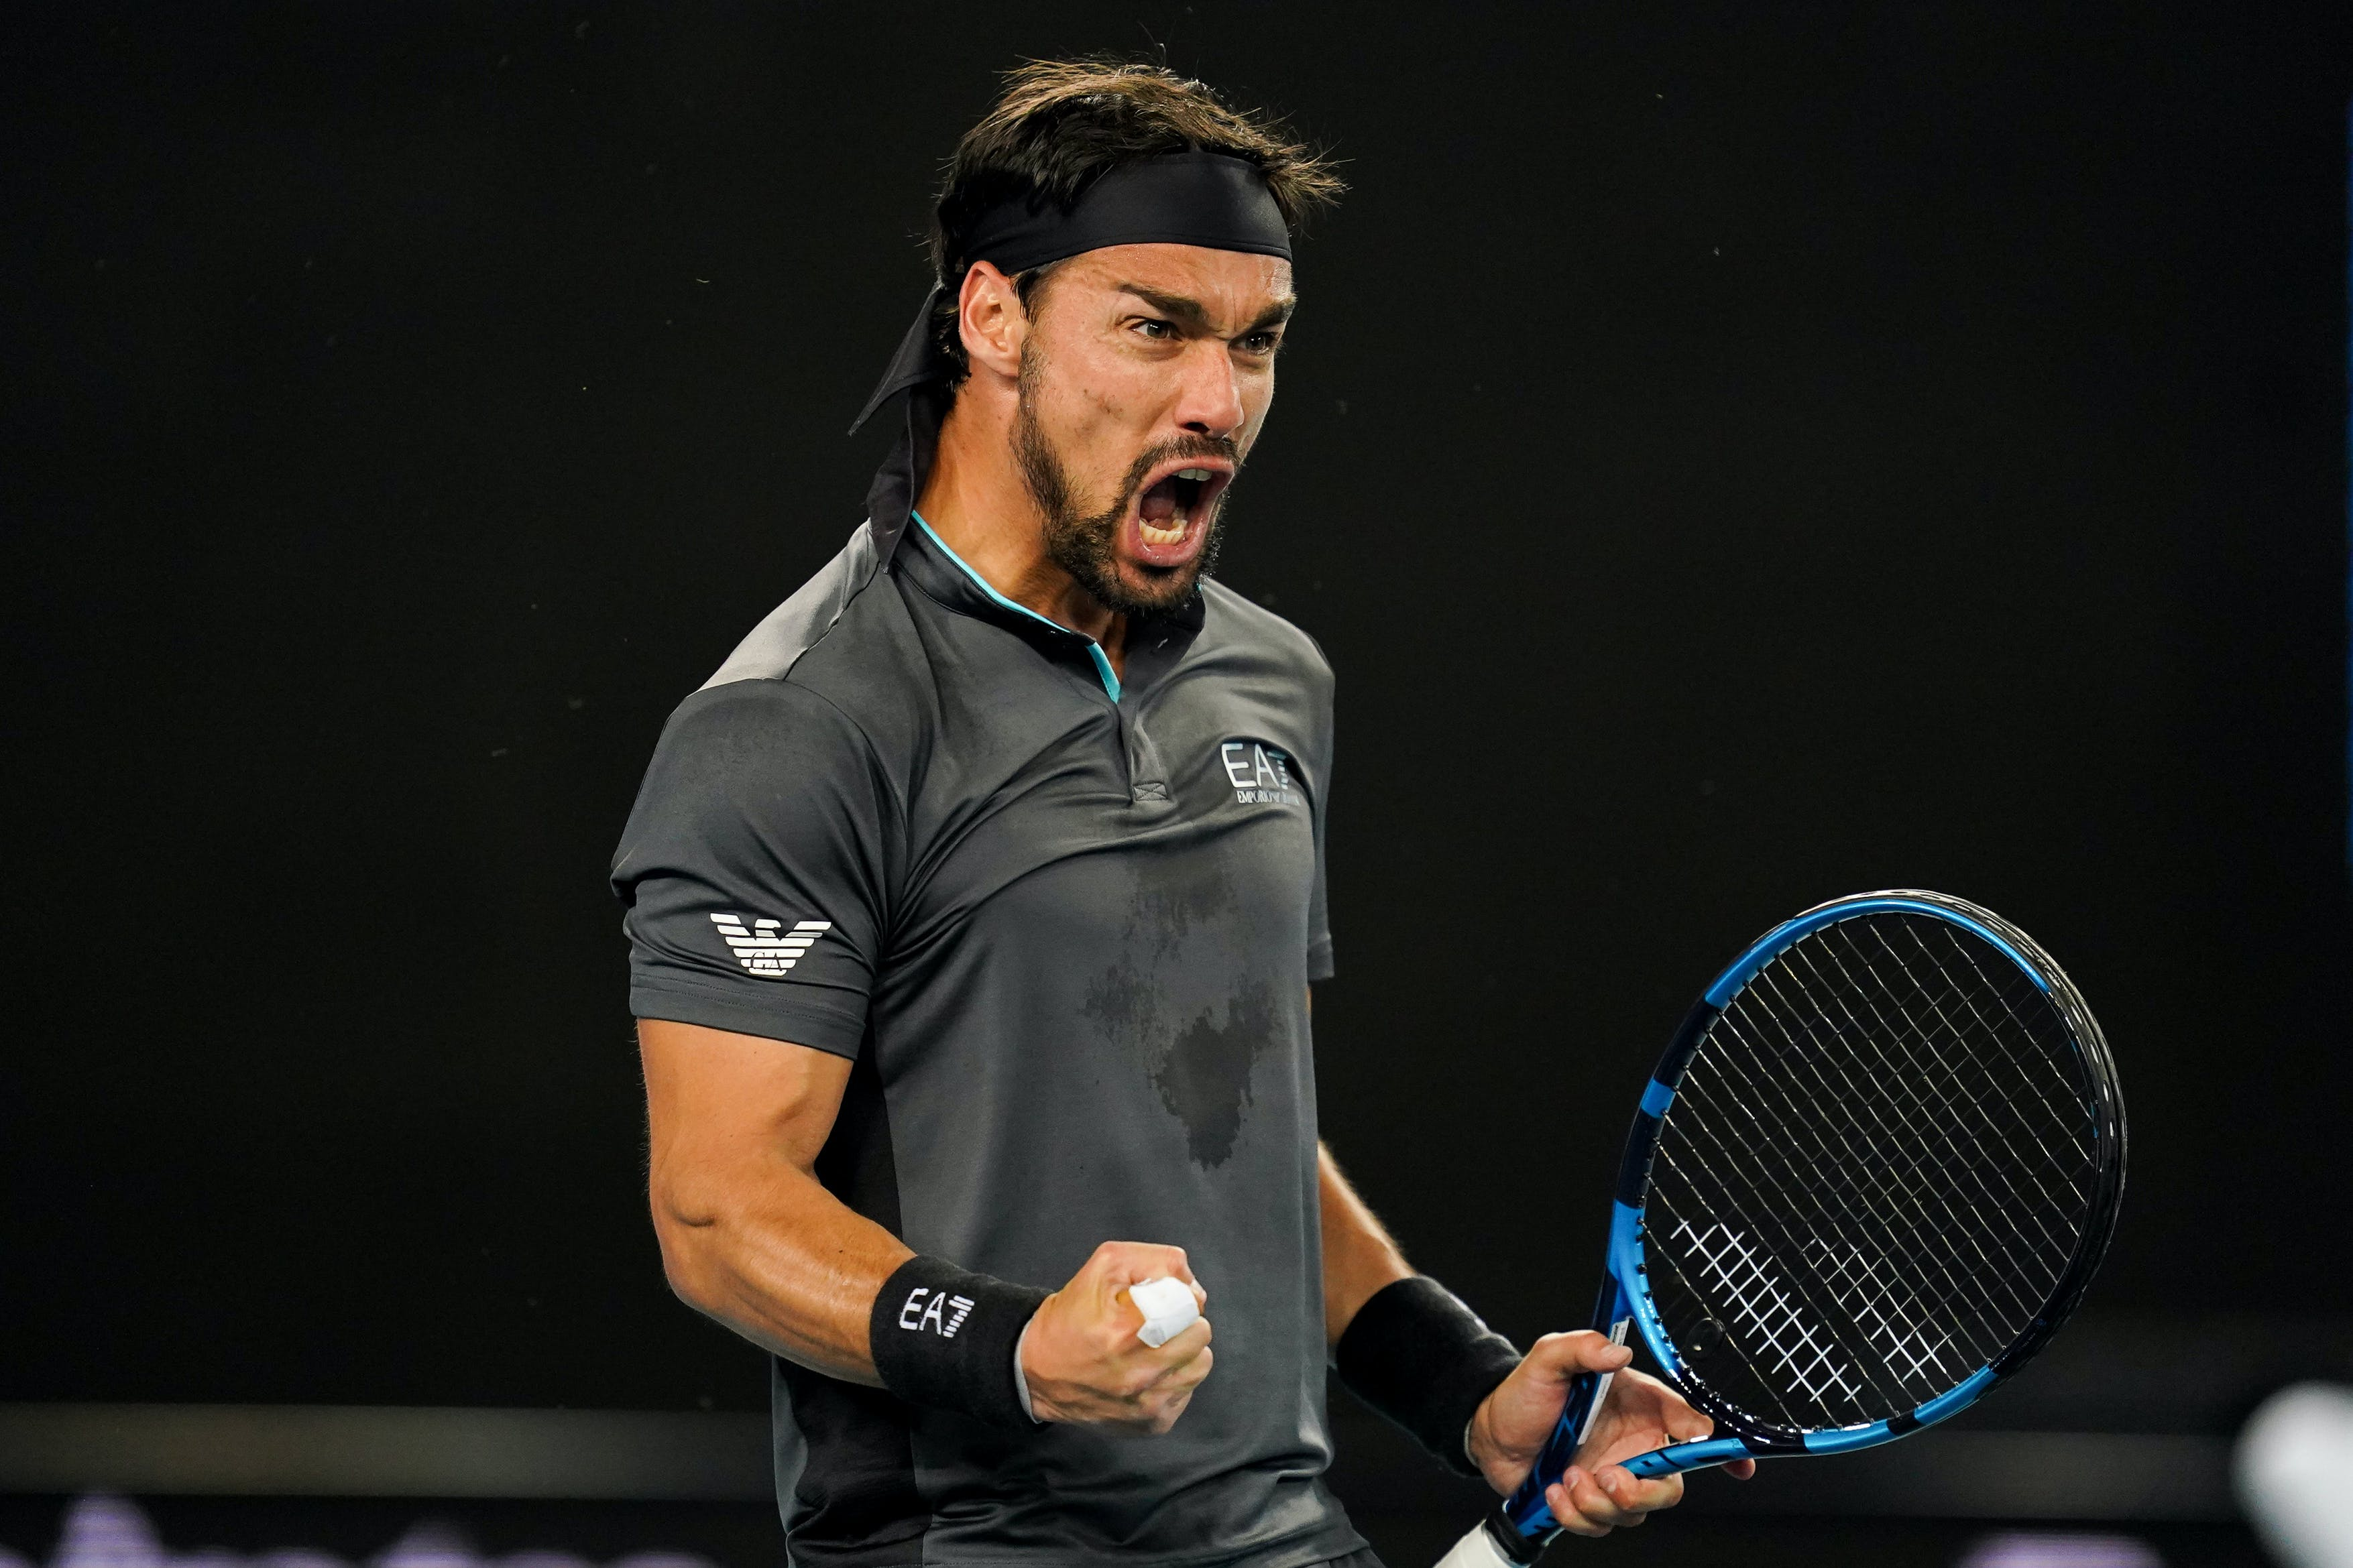 Fabio Fognini at the Australian Open 2021